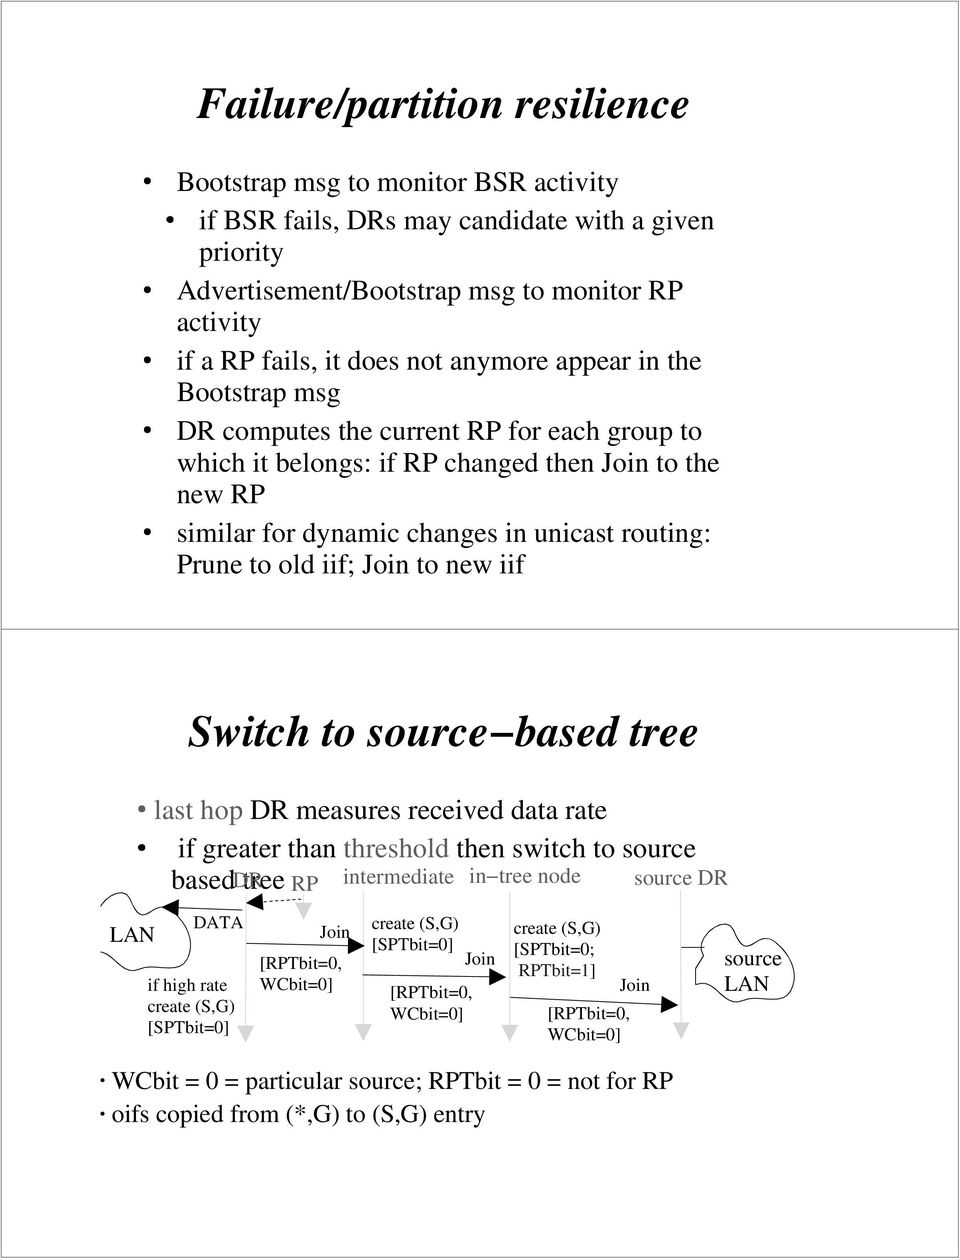 iif; Join to new iif Switch to source based tree last hop DR measures received data rate if greater than threshold then switch to source based DR tree RP intermediate in tree node source DR LAN DATA